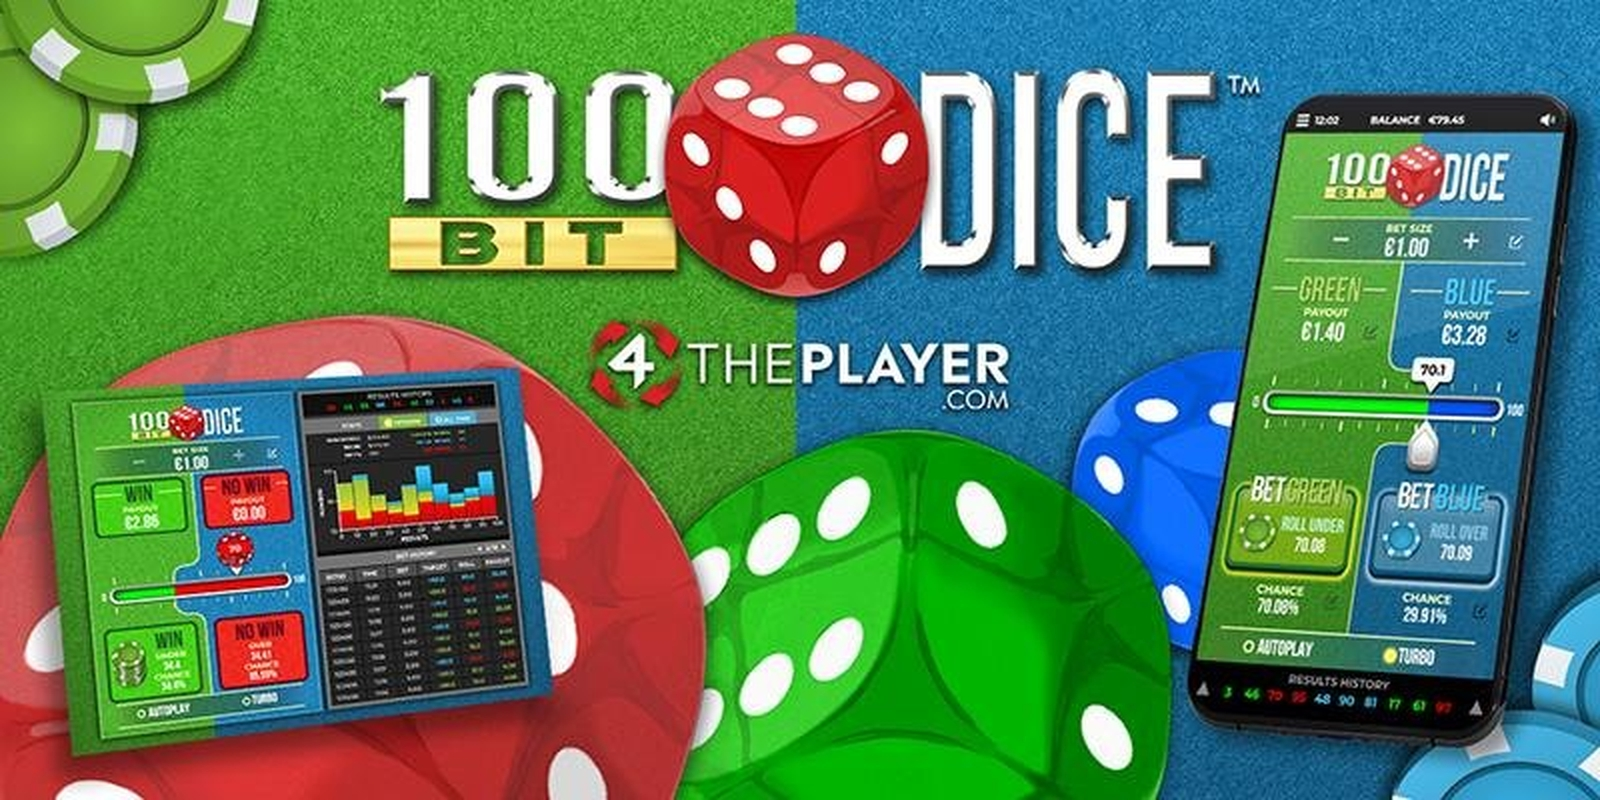 The 100 Bit Dice Online Slot Demo Game by 4ThePlayer